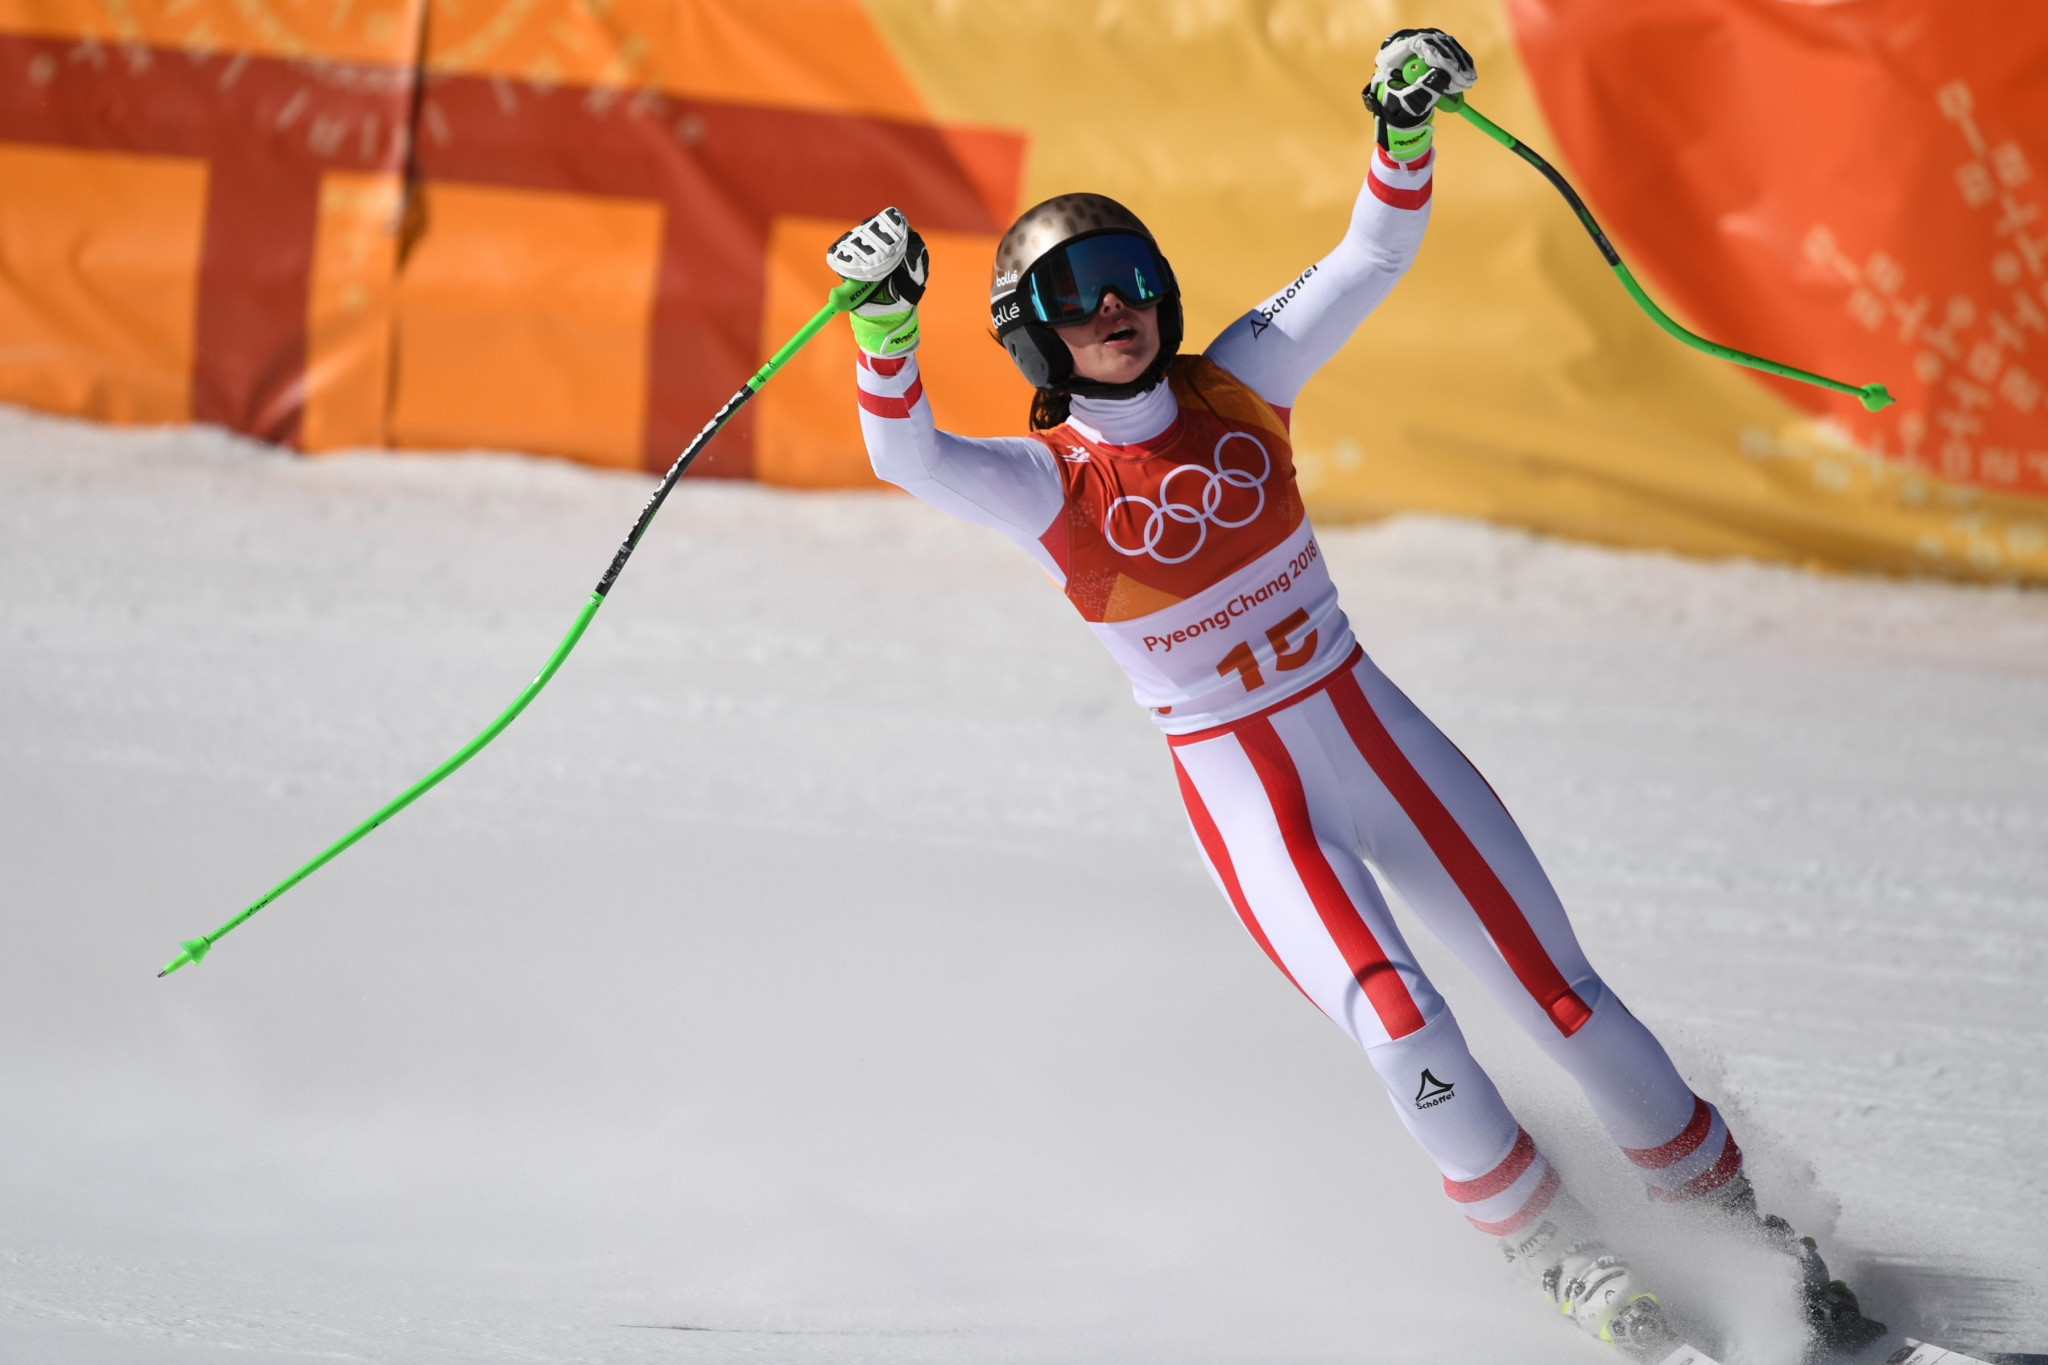 Austria's Anna Veith was convinced she had successfully defended her Olympic title after crossing the finish line ©Getty Images